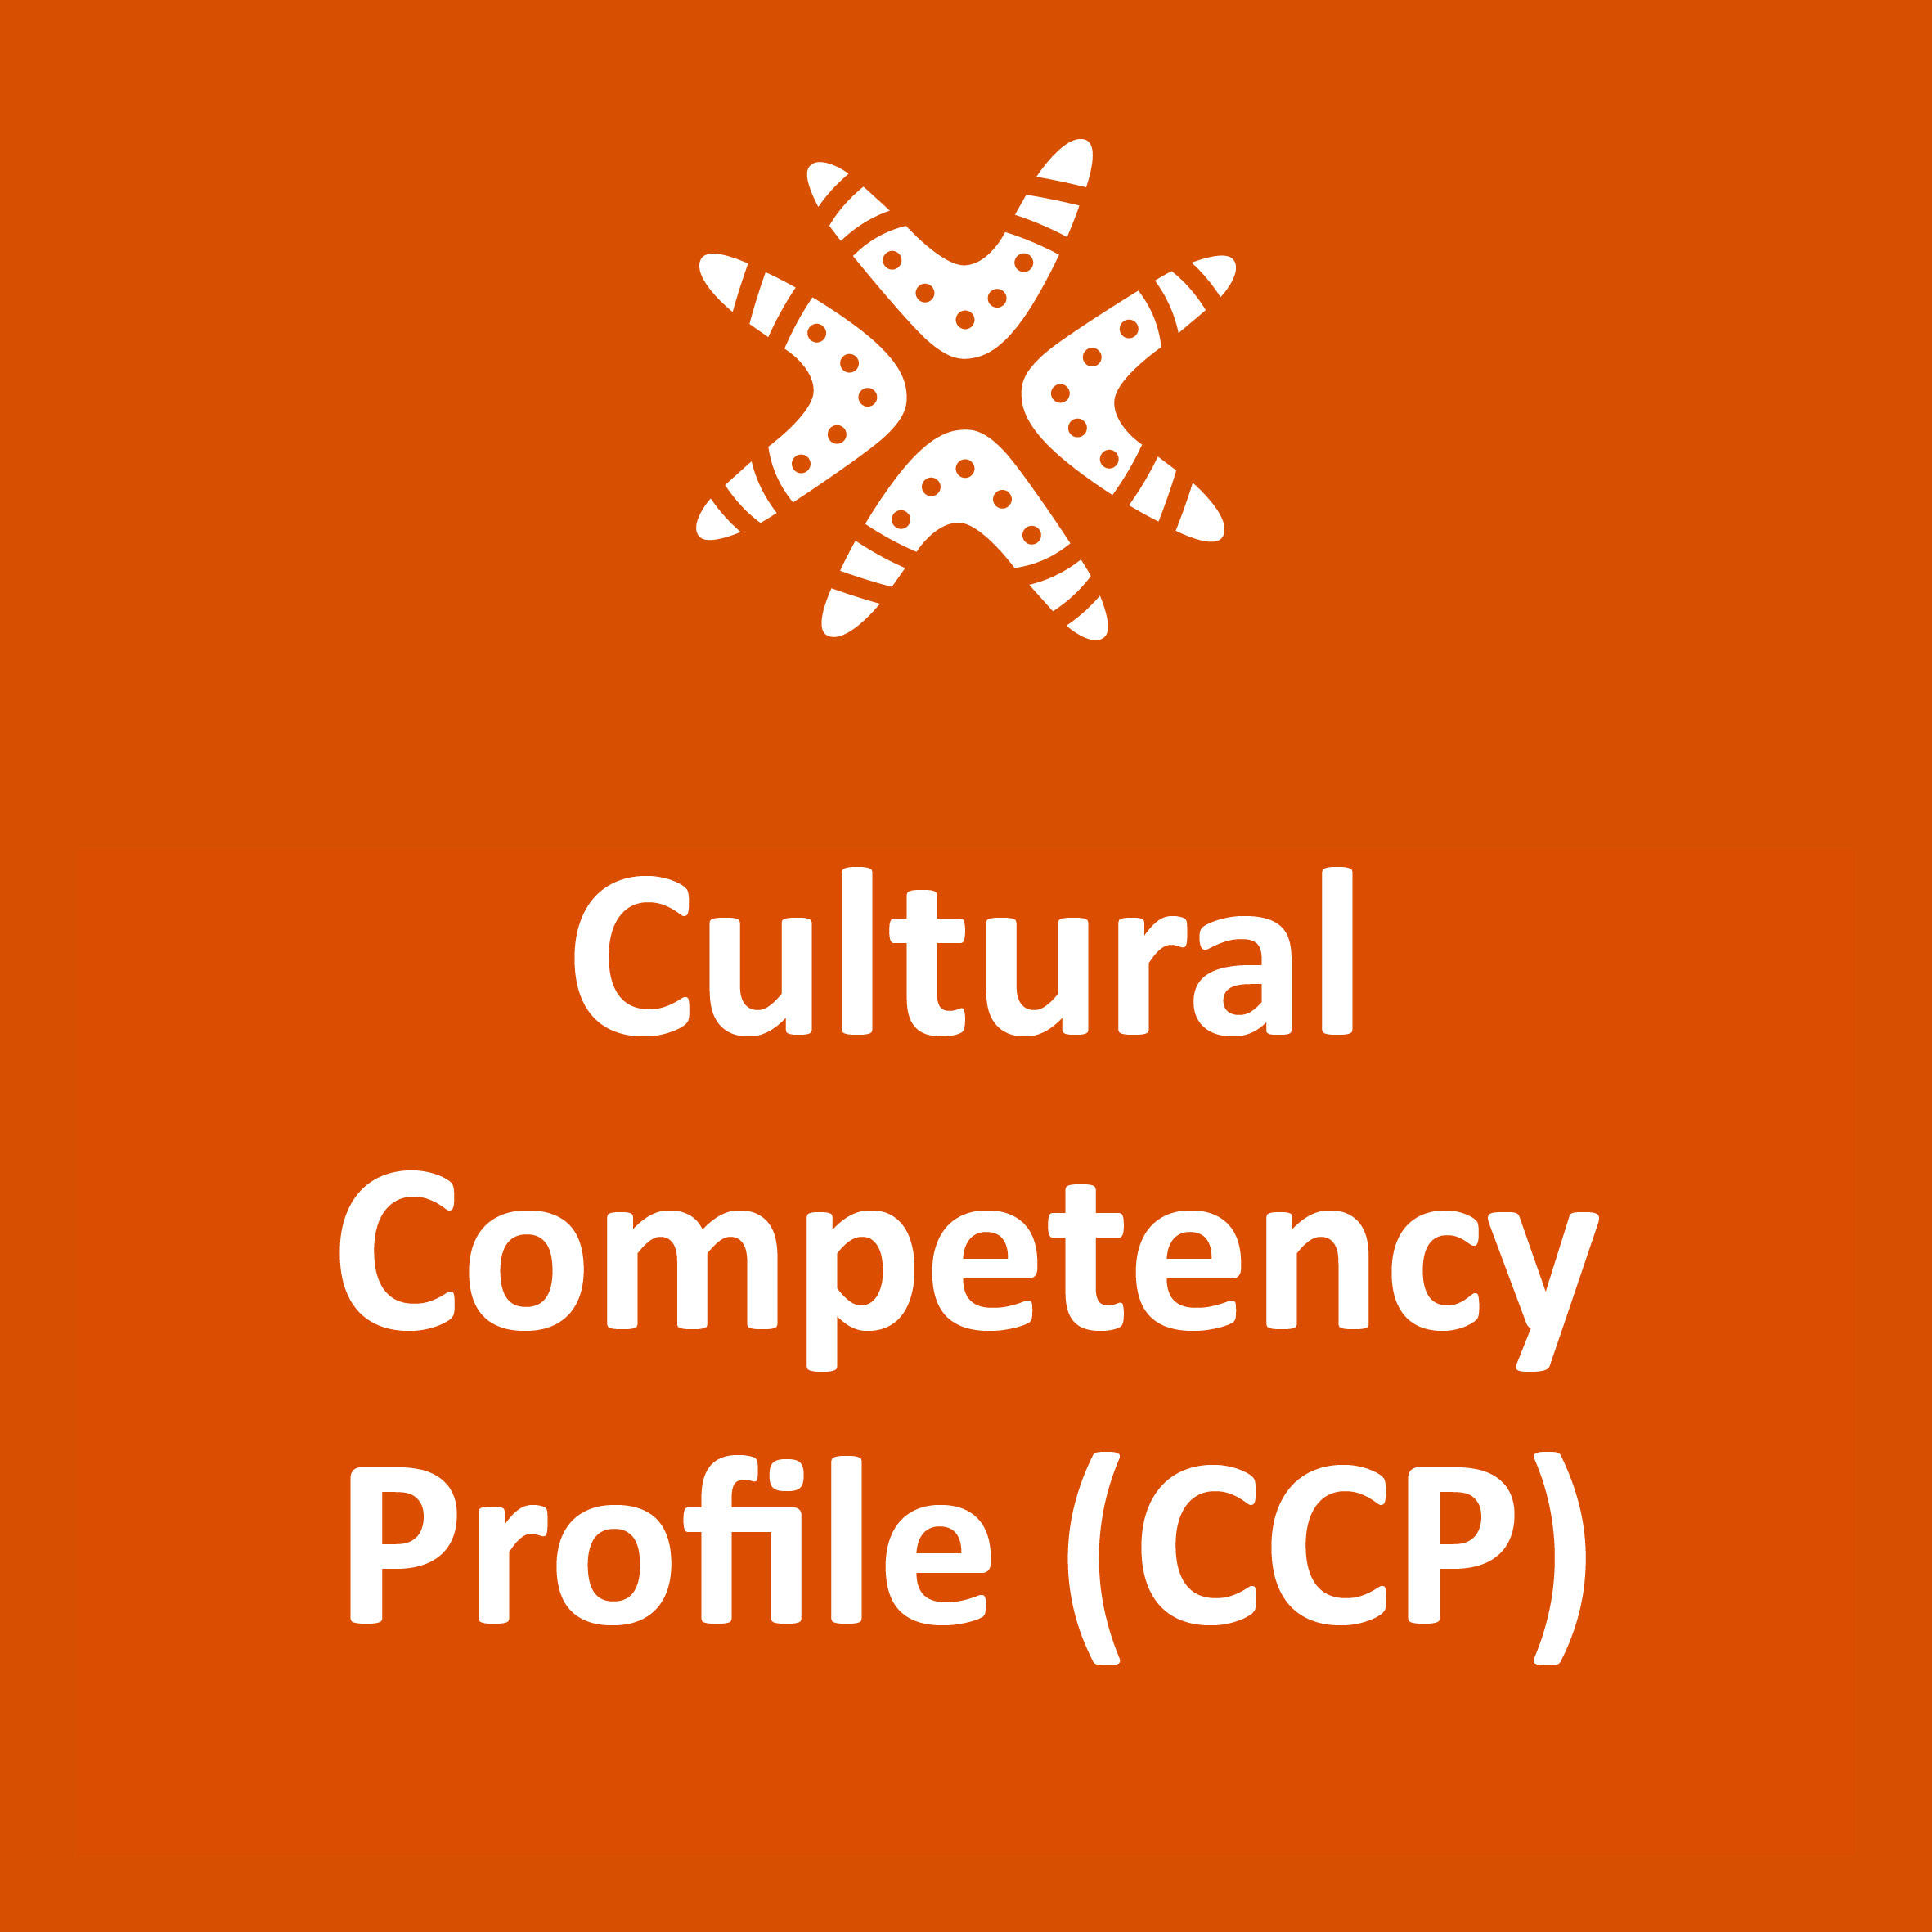 Aboriginal Mental Health Cultural Competency Profile (CCP)